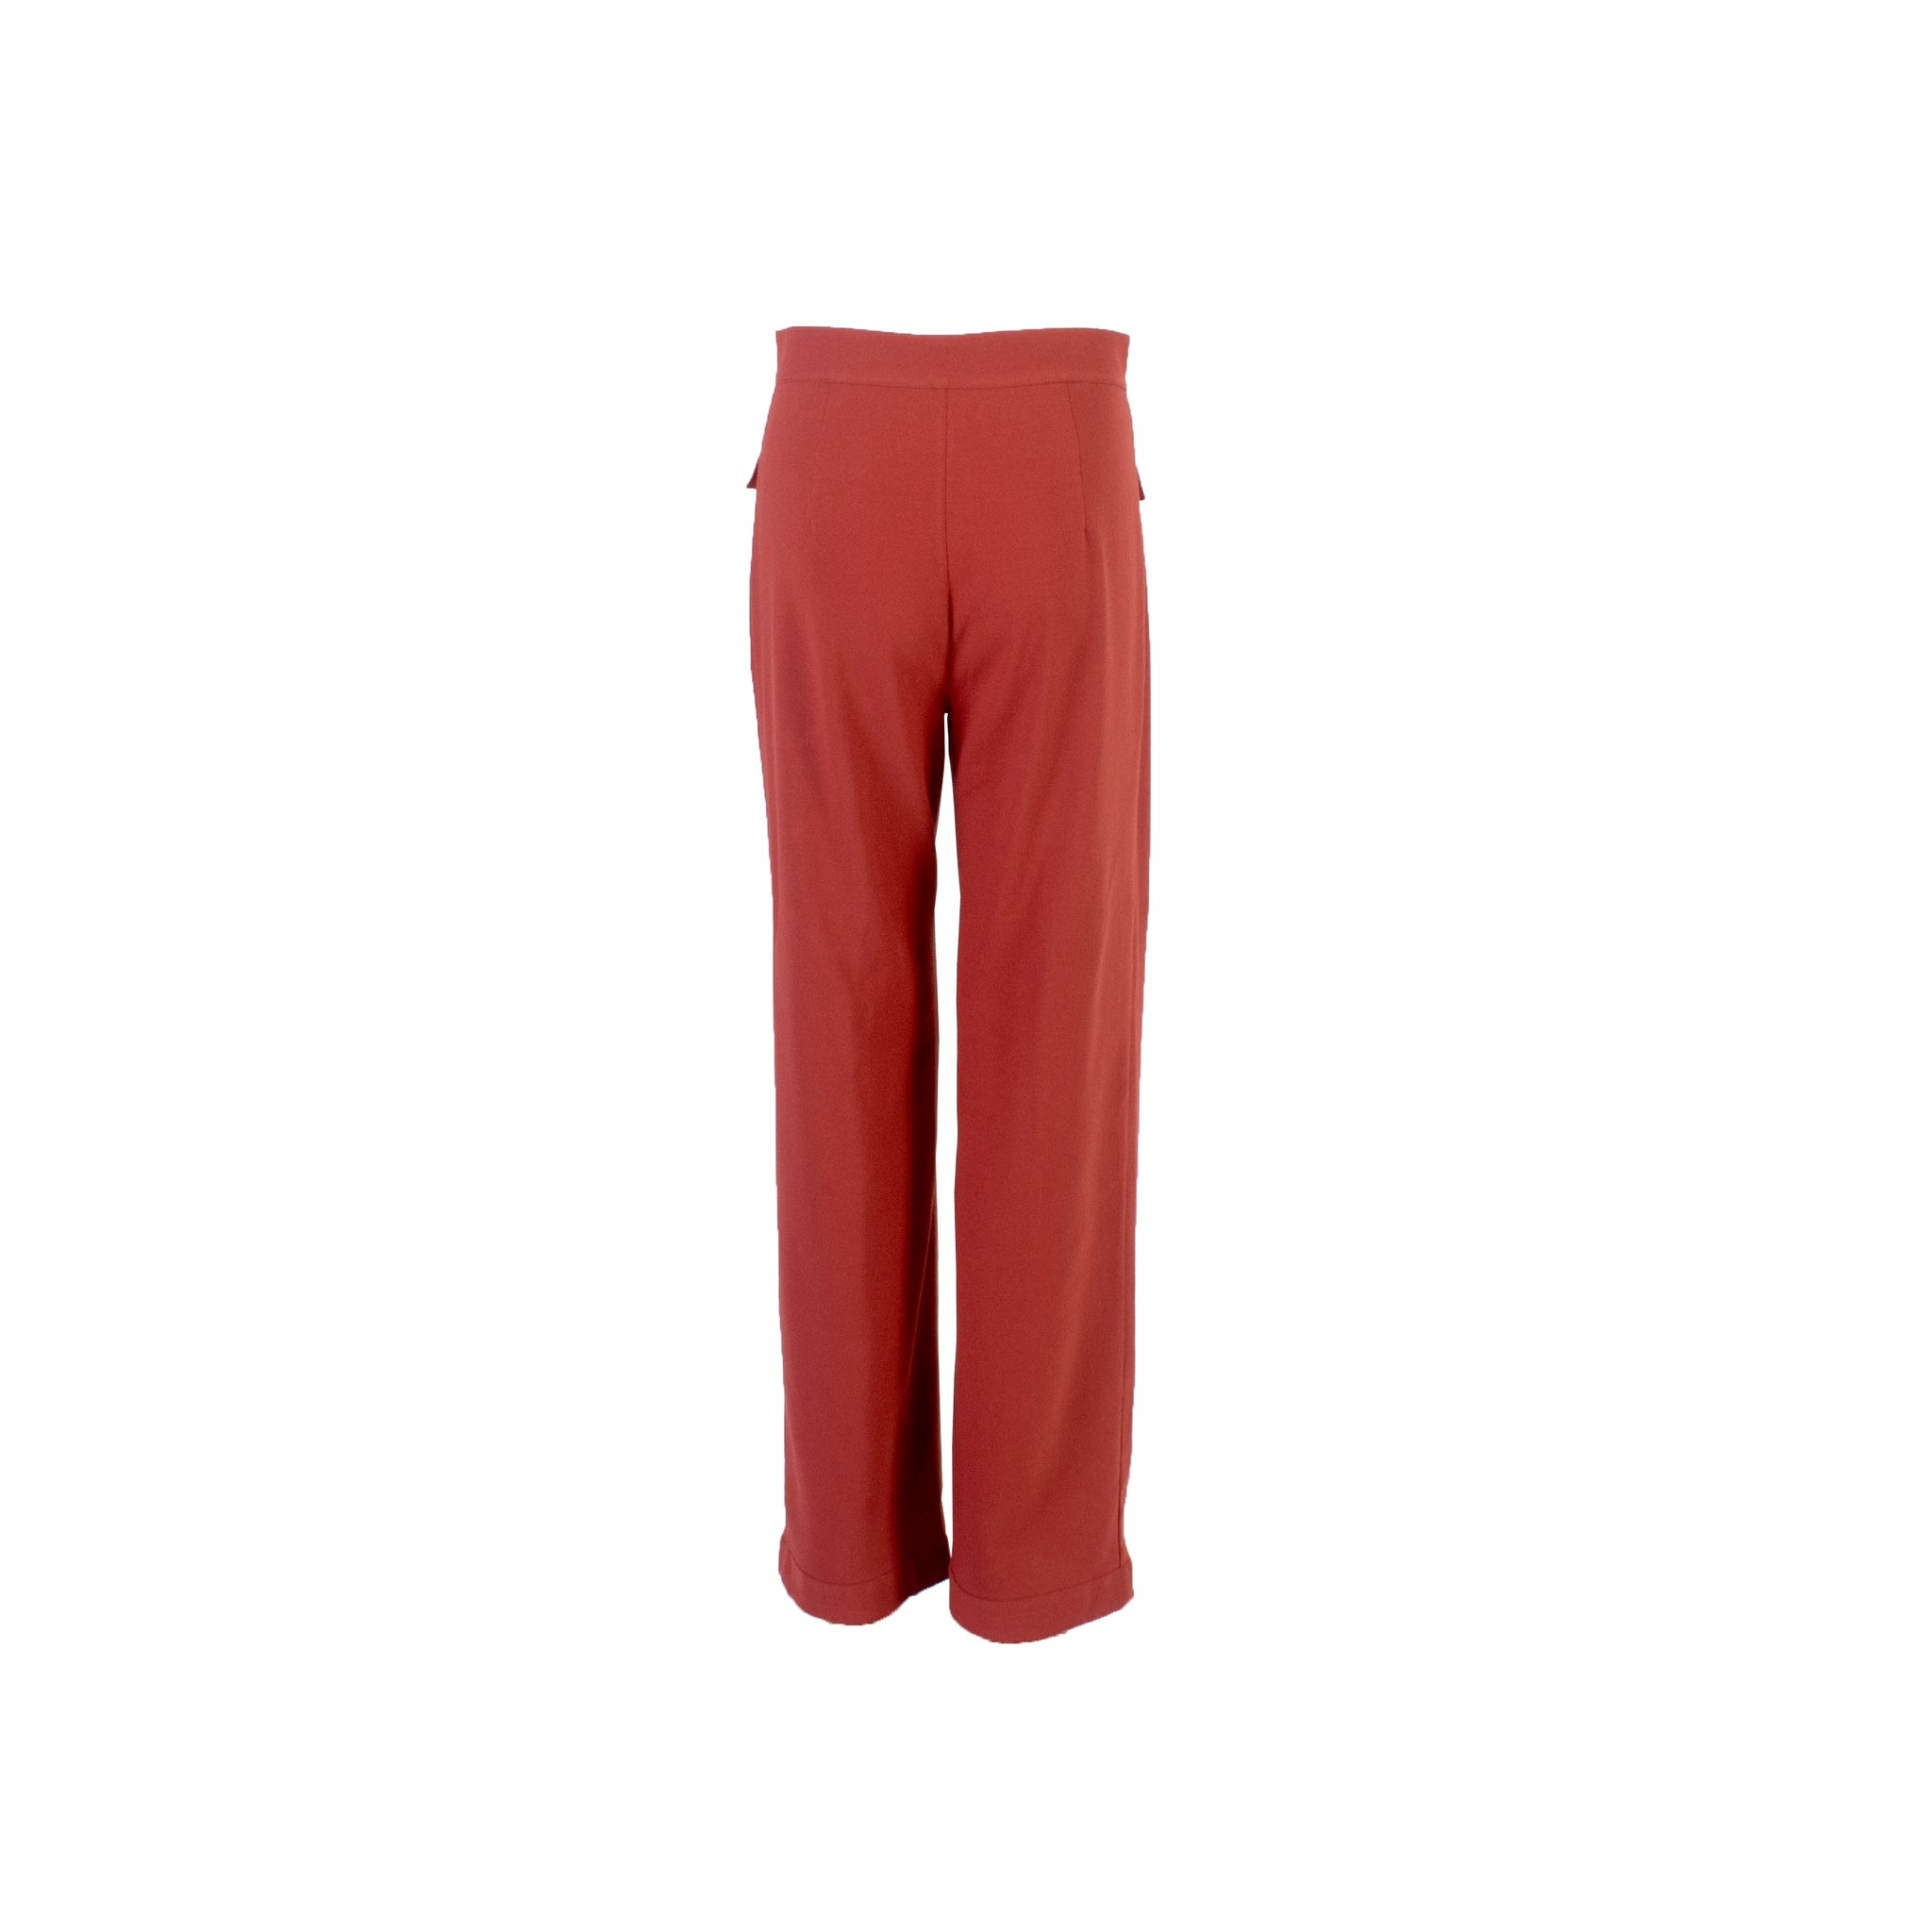 Straight Cut Wool Trousers with Front Pockets Burgundy